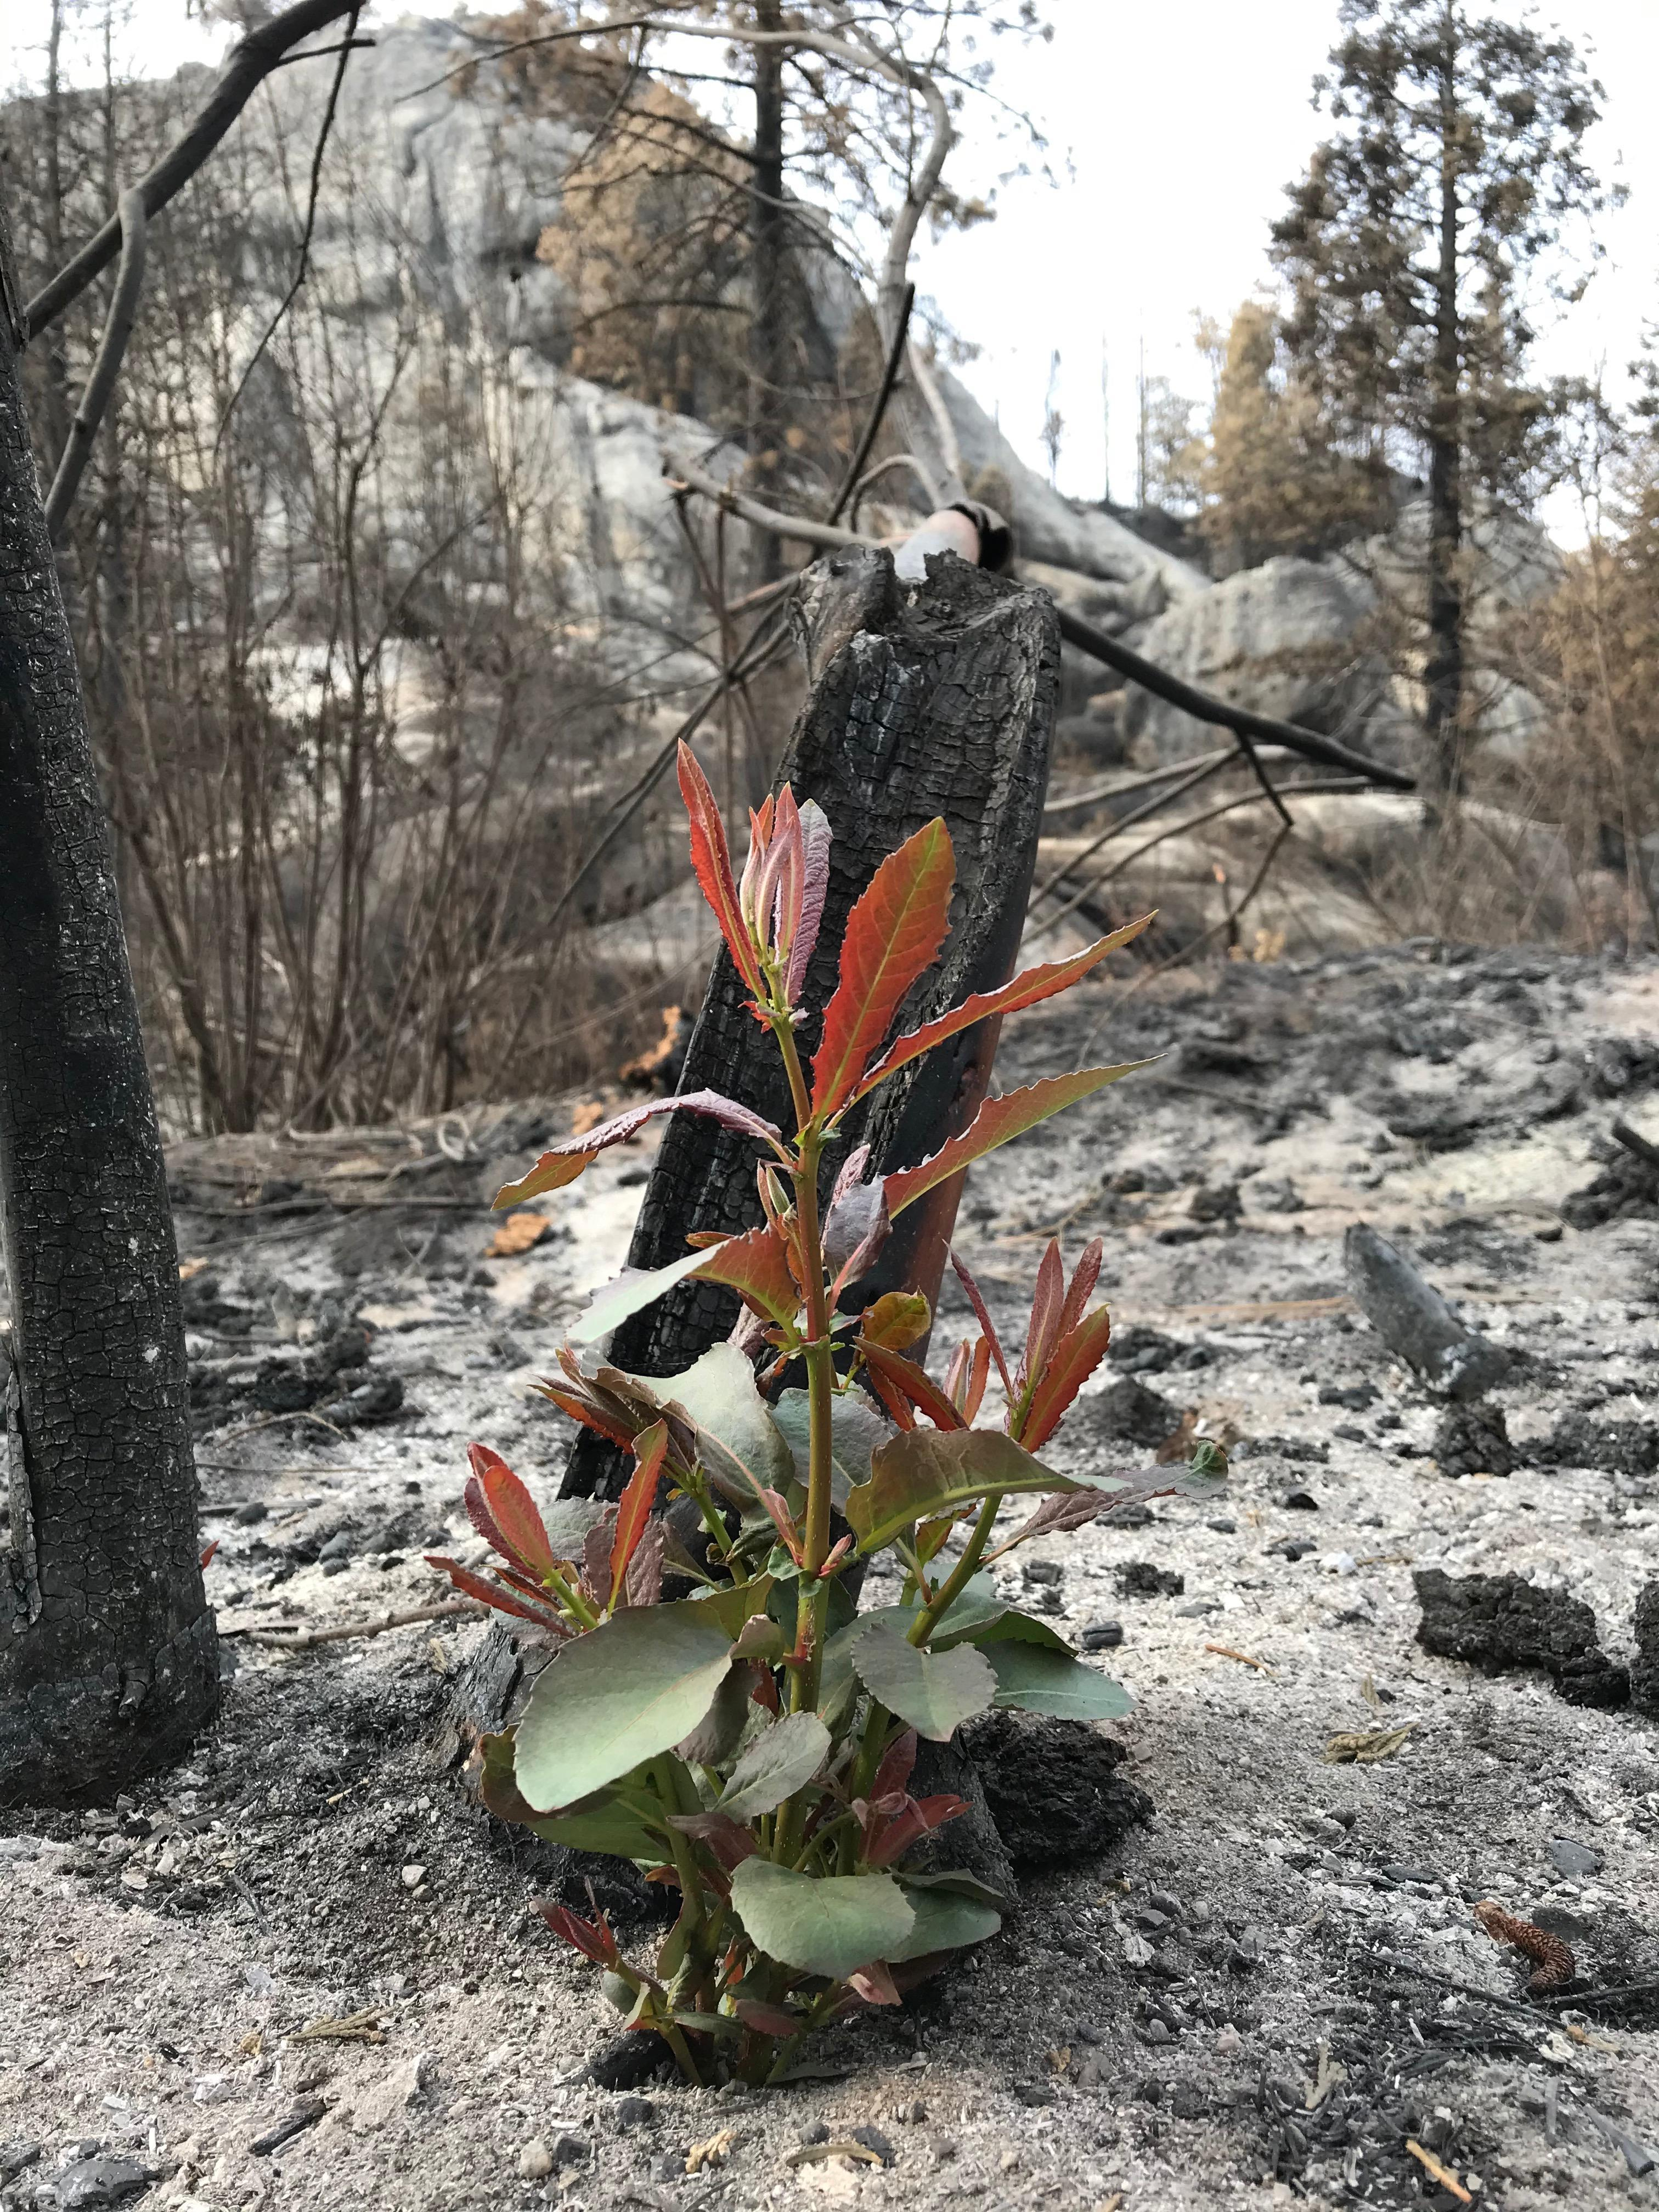 New plant sprouting in burn area near Stevenson Creek, Oct 10 2020. Photo by Daniel R. Patterson, PIO